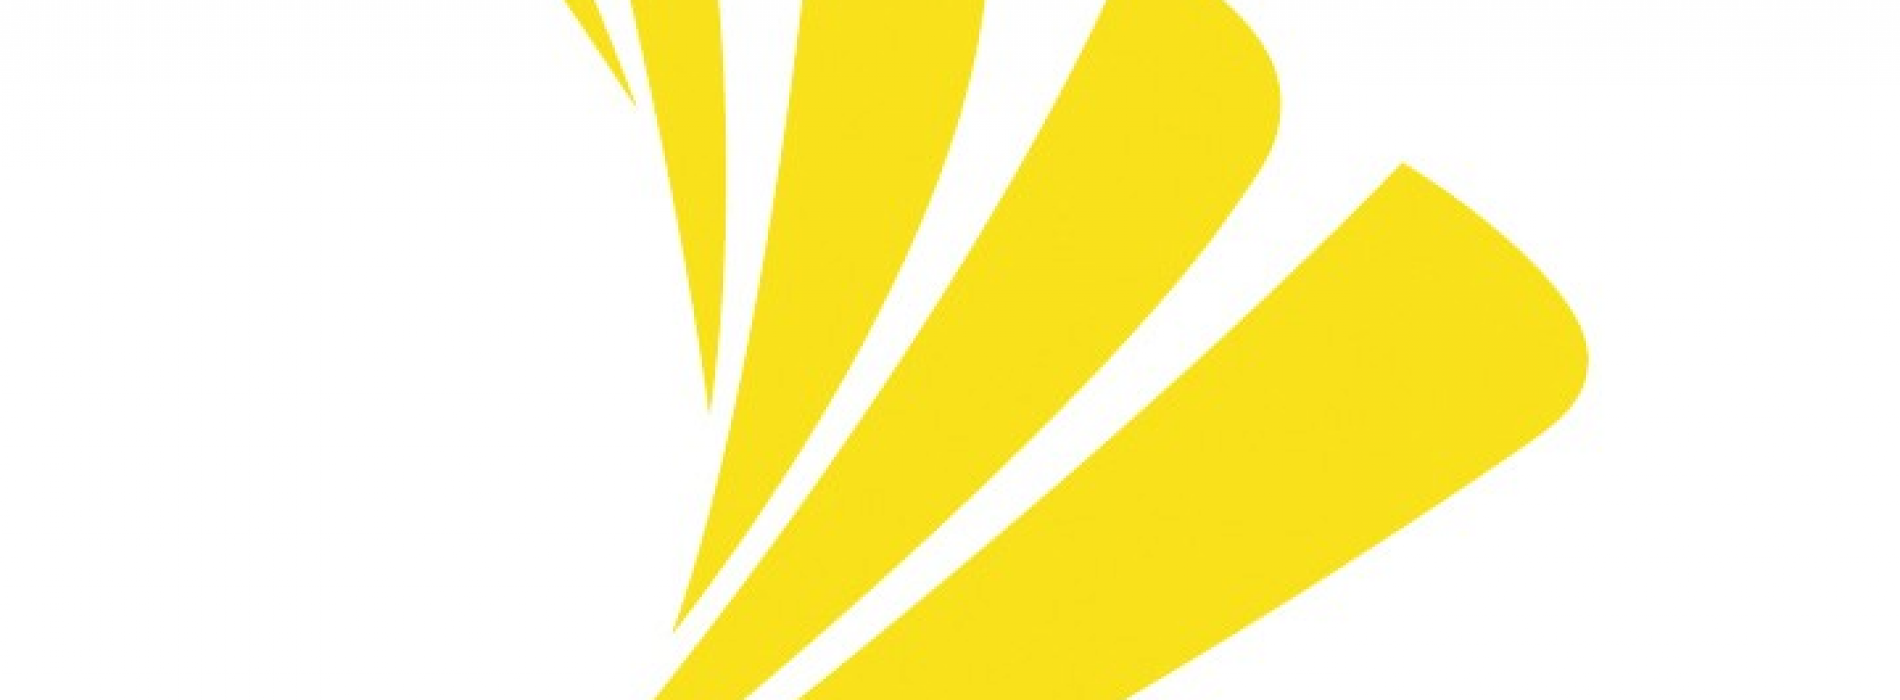 Sprint expands 4G LTE to parts of Kansas, Illinois and Massachusetts